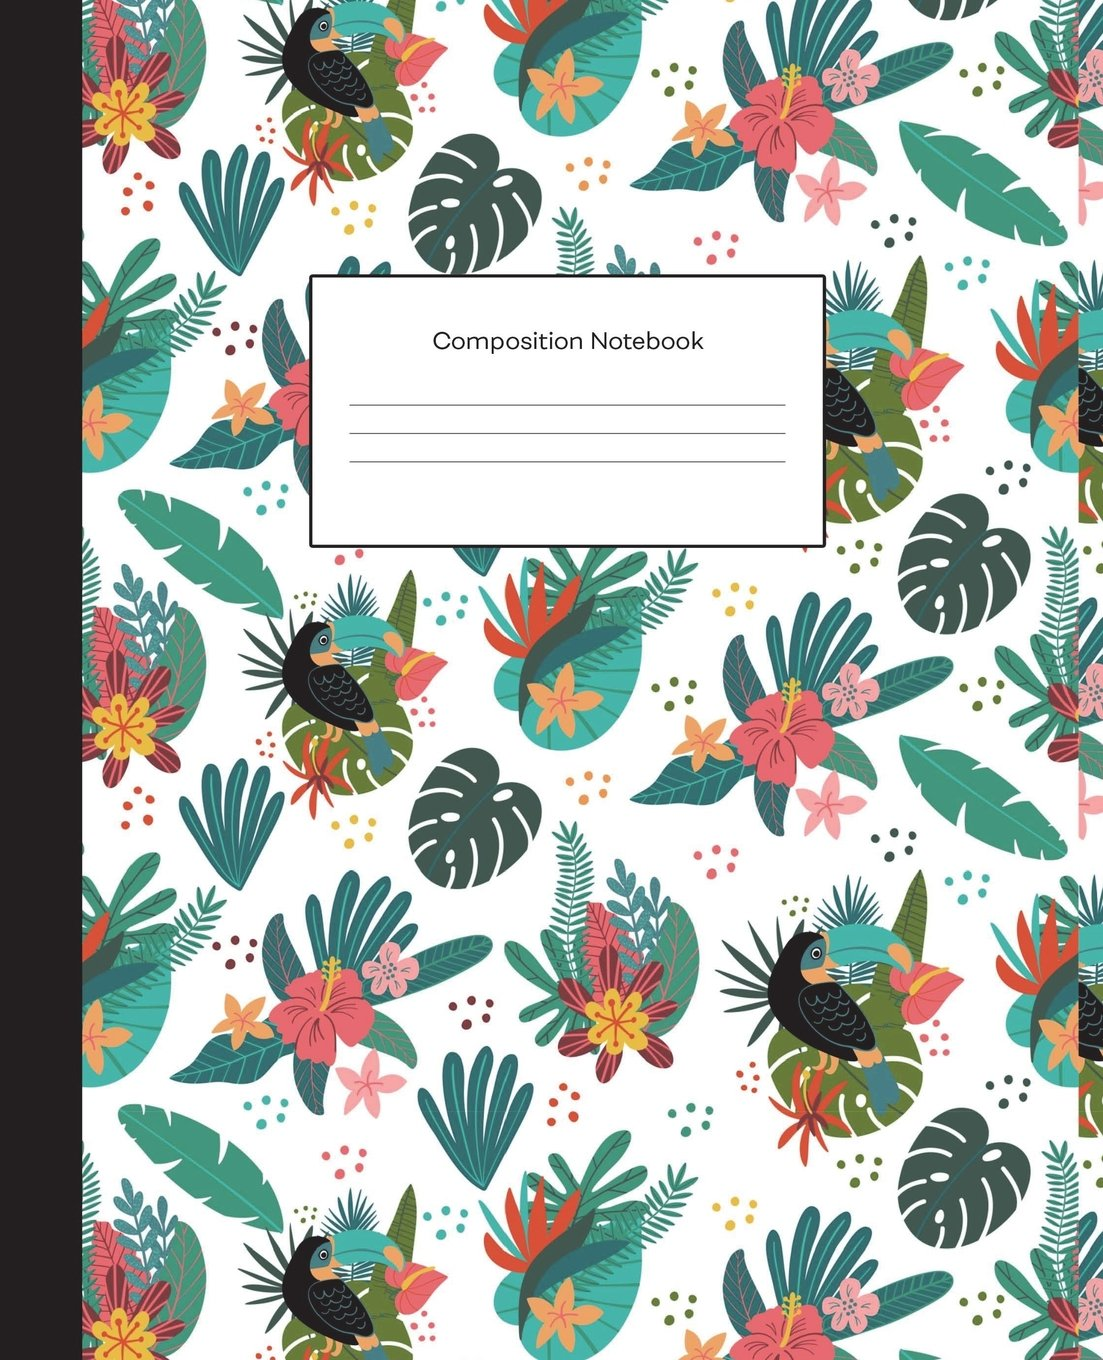 Composition Notebook: Tropical Jungle Pattern Wide Ruled Blank Lined Composition Book Journal (7.5 x 9.25 in) Cute Notebooks for Girls Teens Women ... Diary Writing Notes (Composition Notebooks) PDF